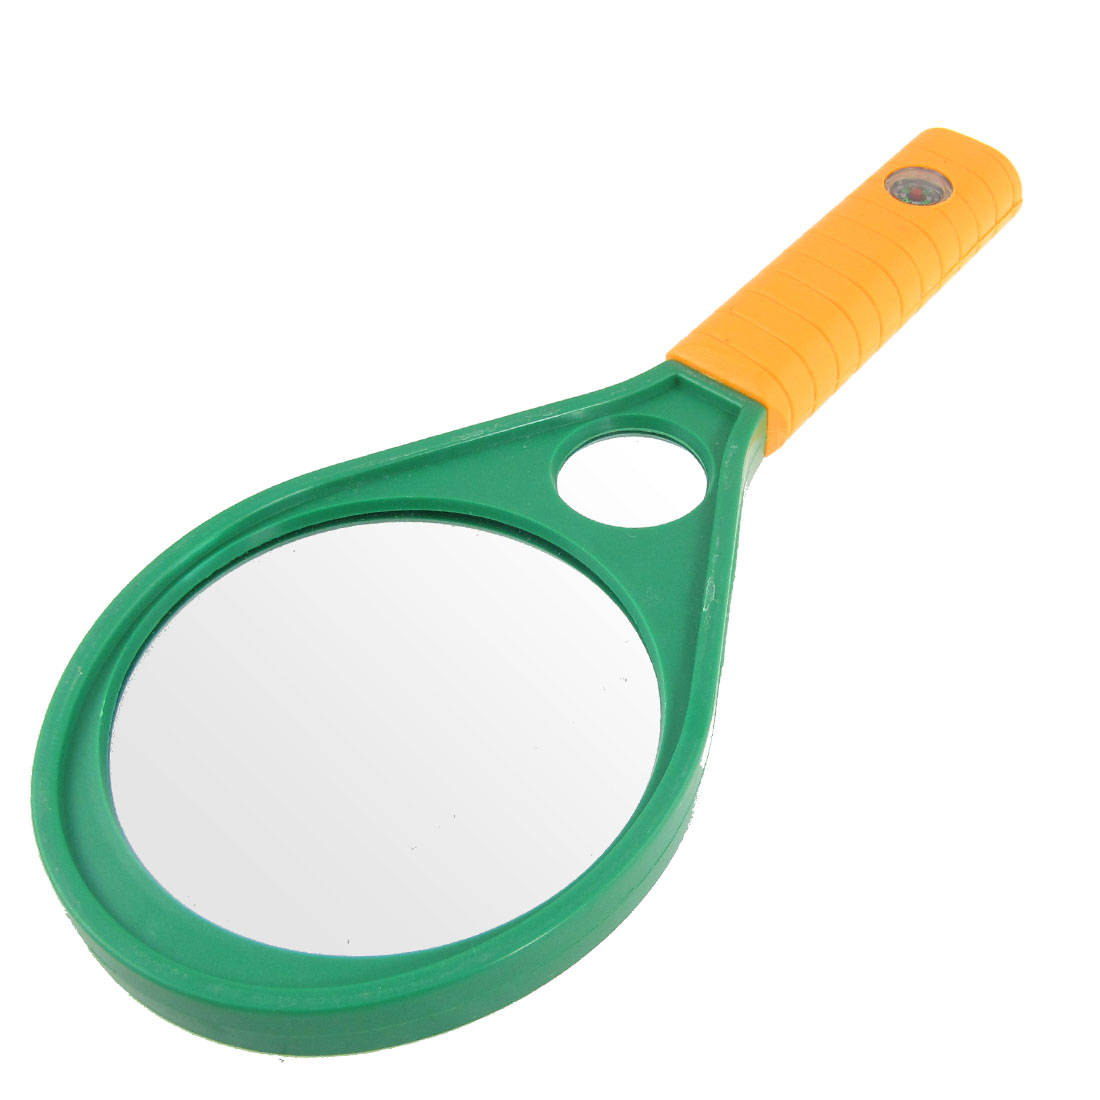 90mm 3X Nonslip Plastic Handle Double Glasses Magnifying Magnifier for Reading